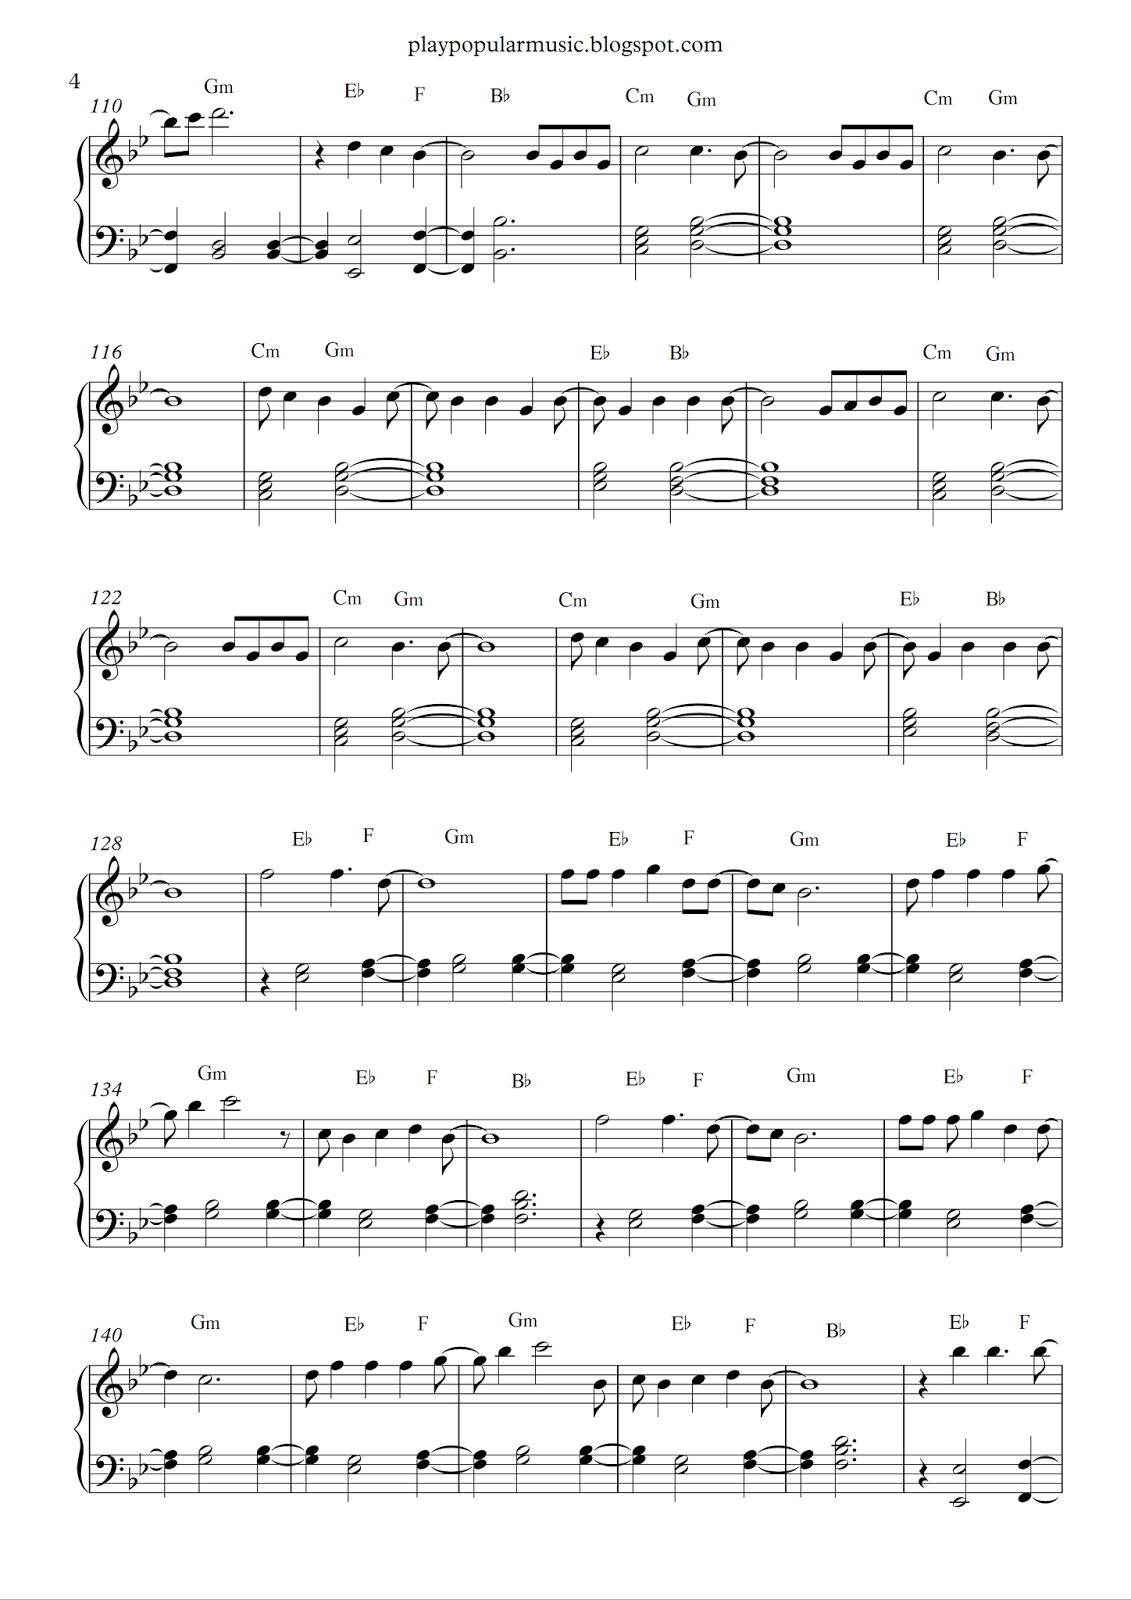 A Dream Is A Wish Your Heart Makes Flute Sheet Music Free Piano Sheet Music Fifth Harmony Write On Me Pdf Write On Me Give Me Some Wings I Ll Fly Fifth Harmony Sheet Music Piano Sheet Music Free